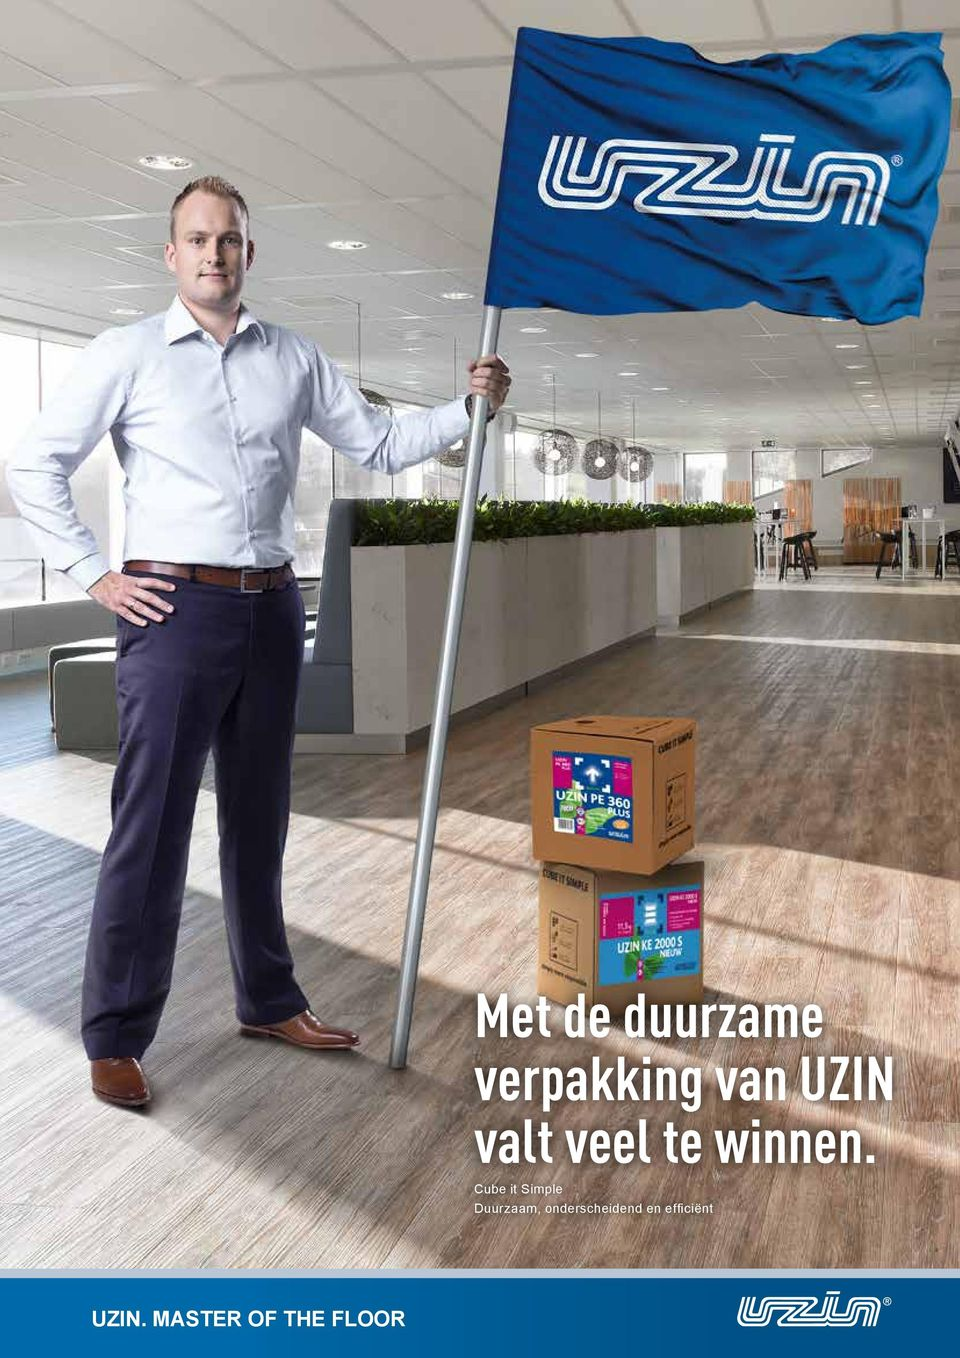 Cube it Simple Duurzaam,